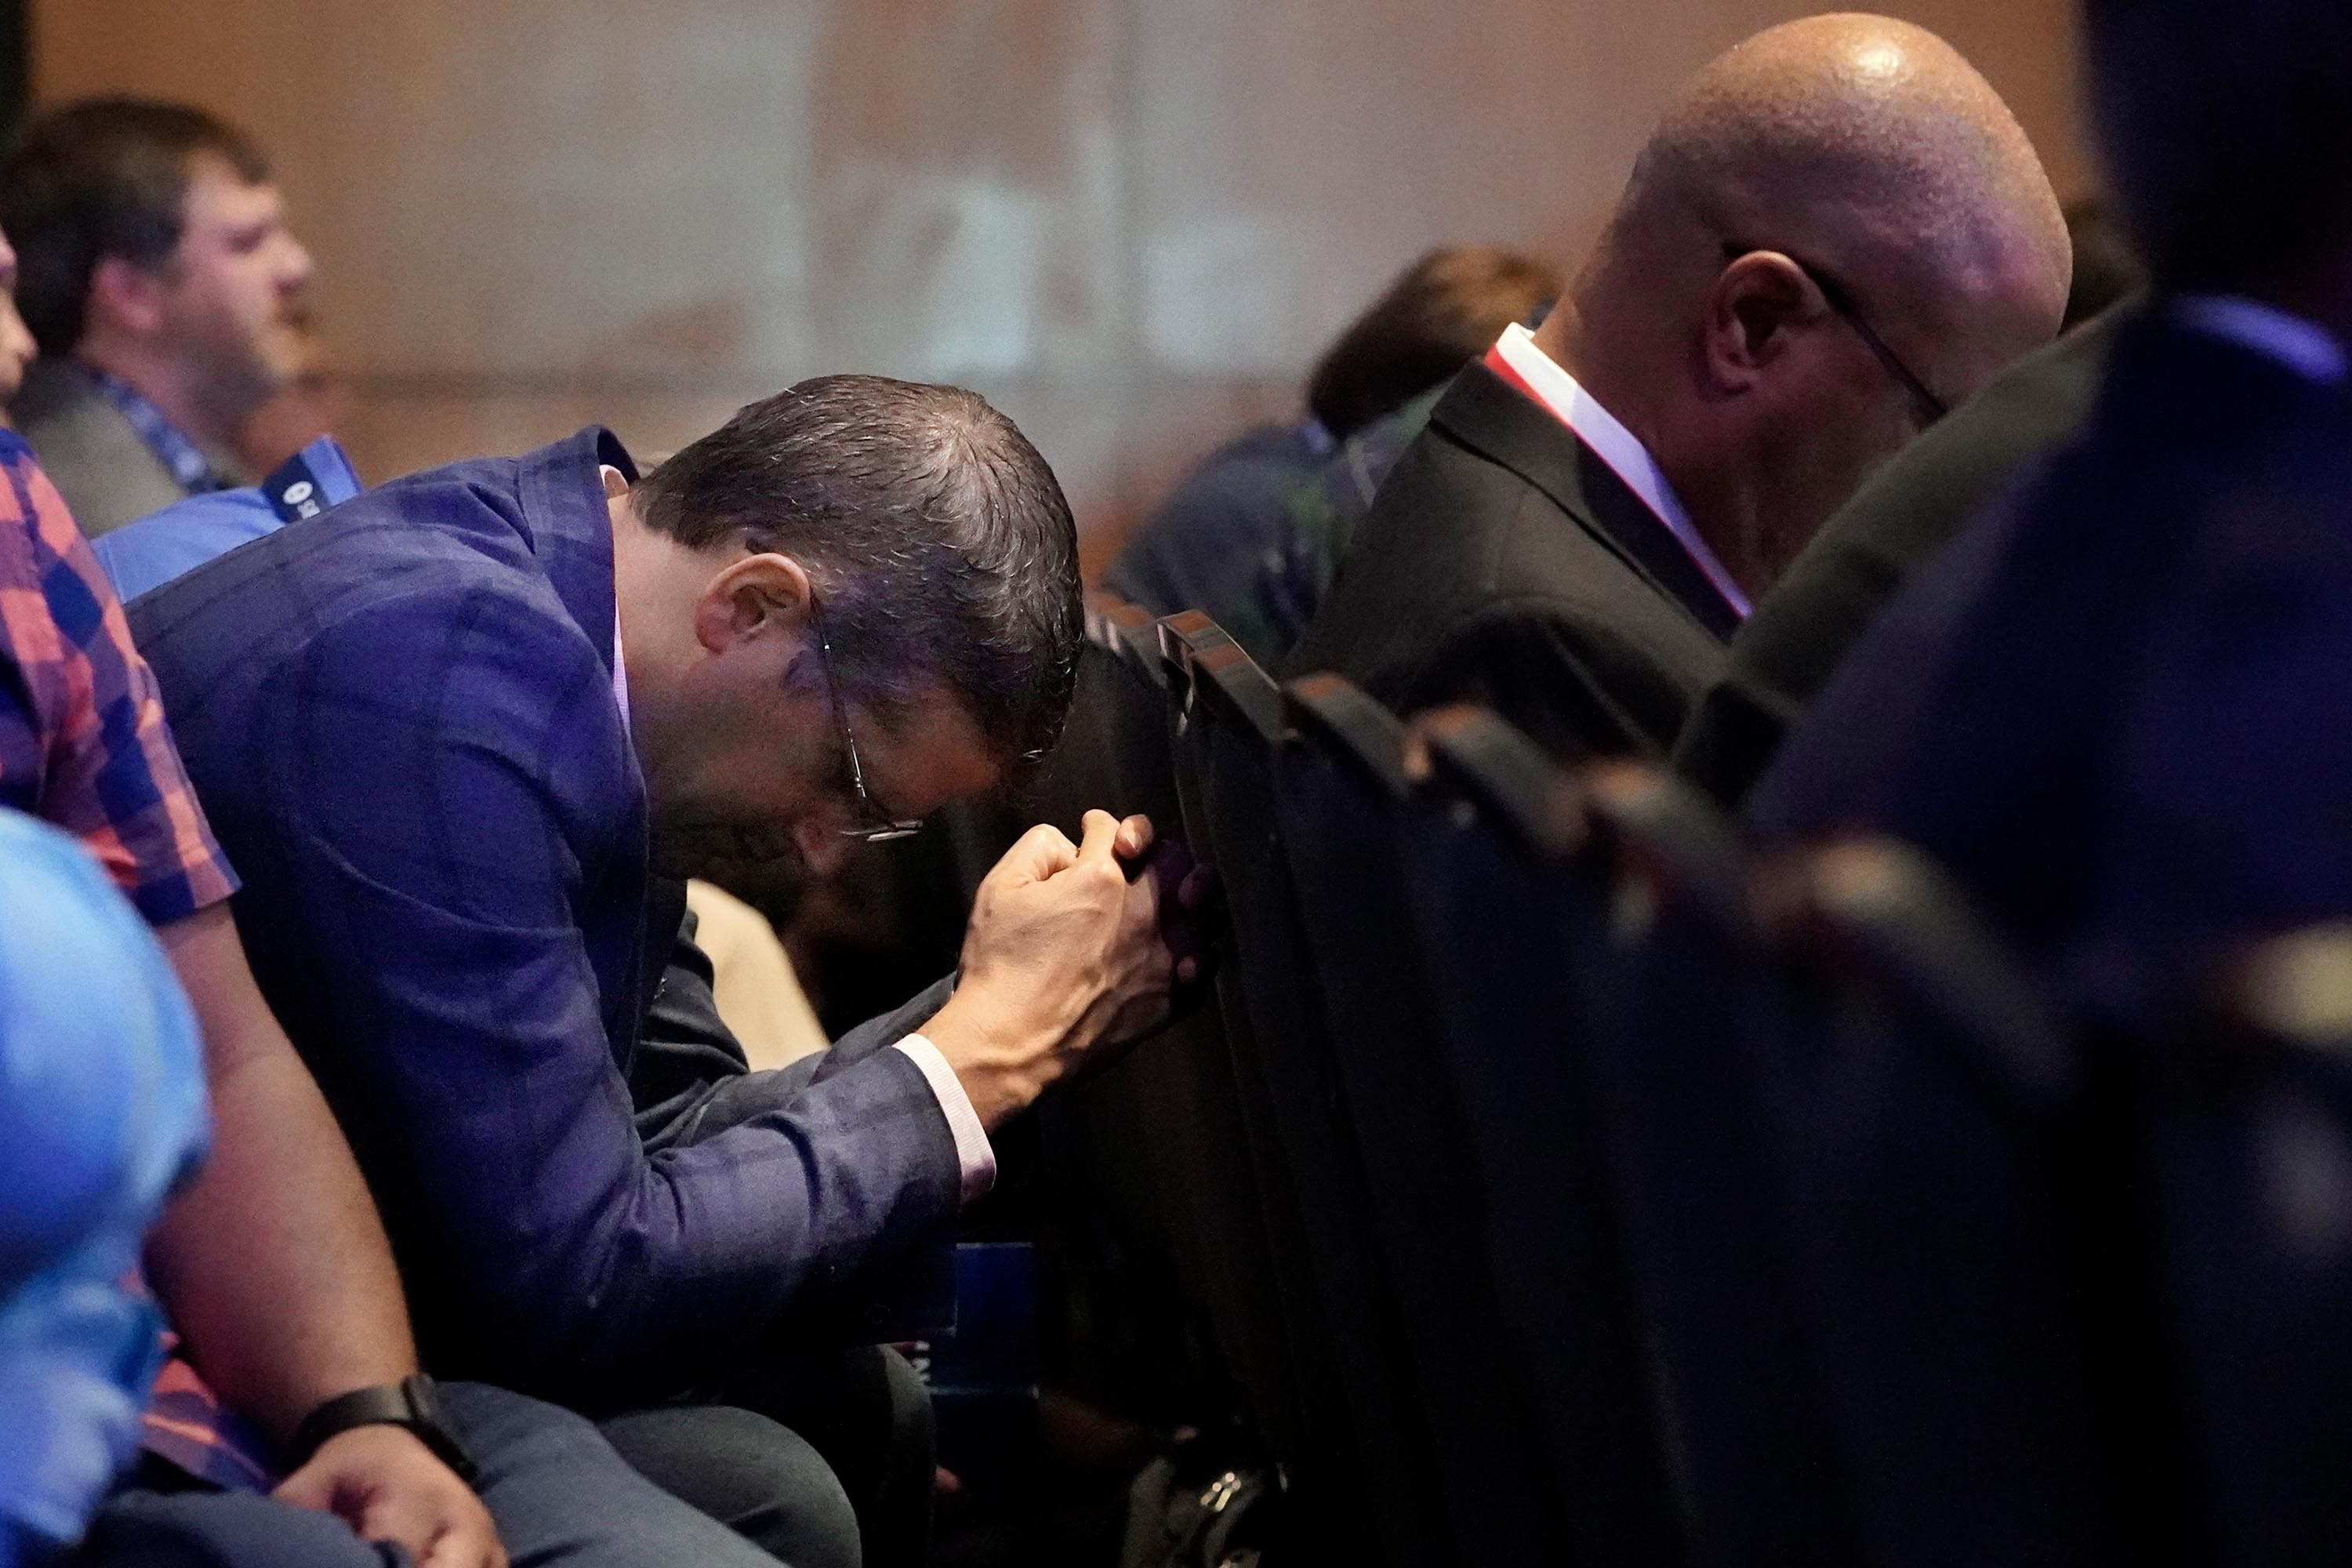 Moderates win the day in close vote over Southern Baptist presidency